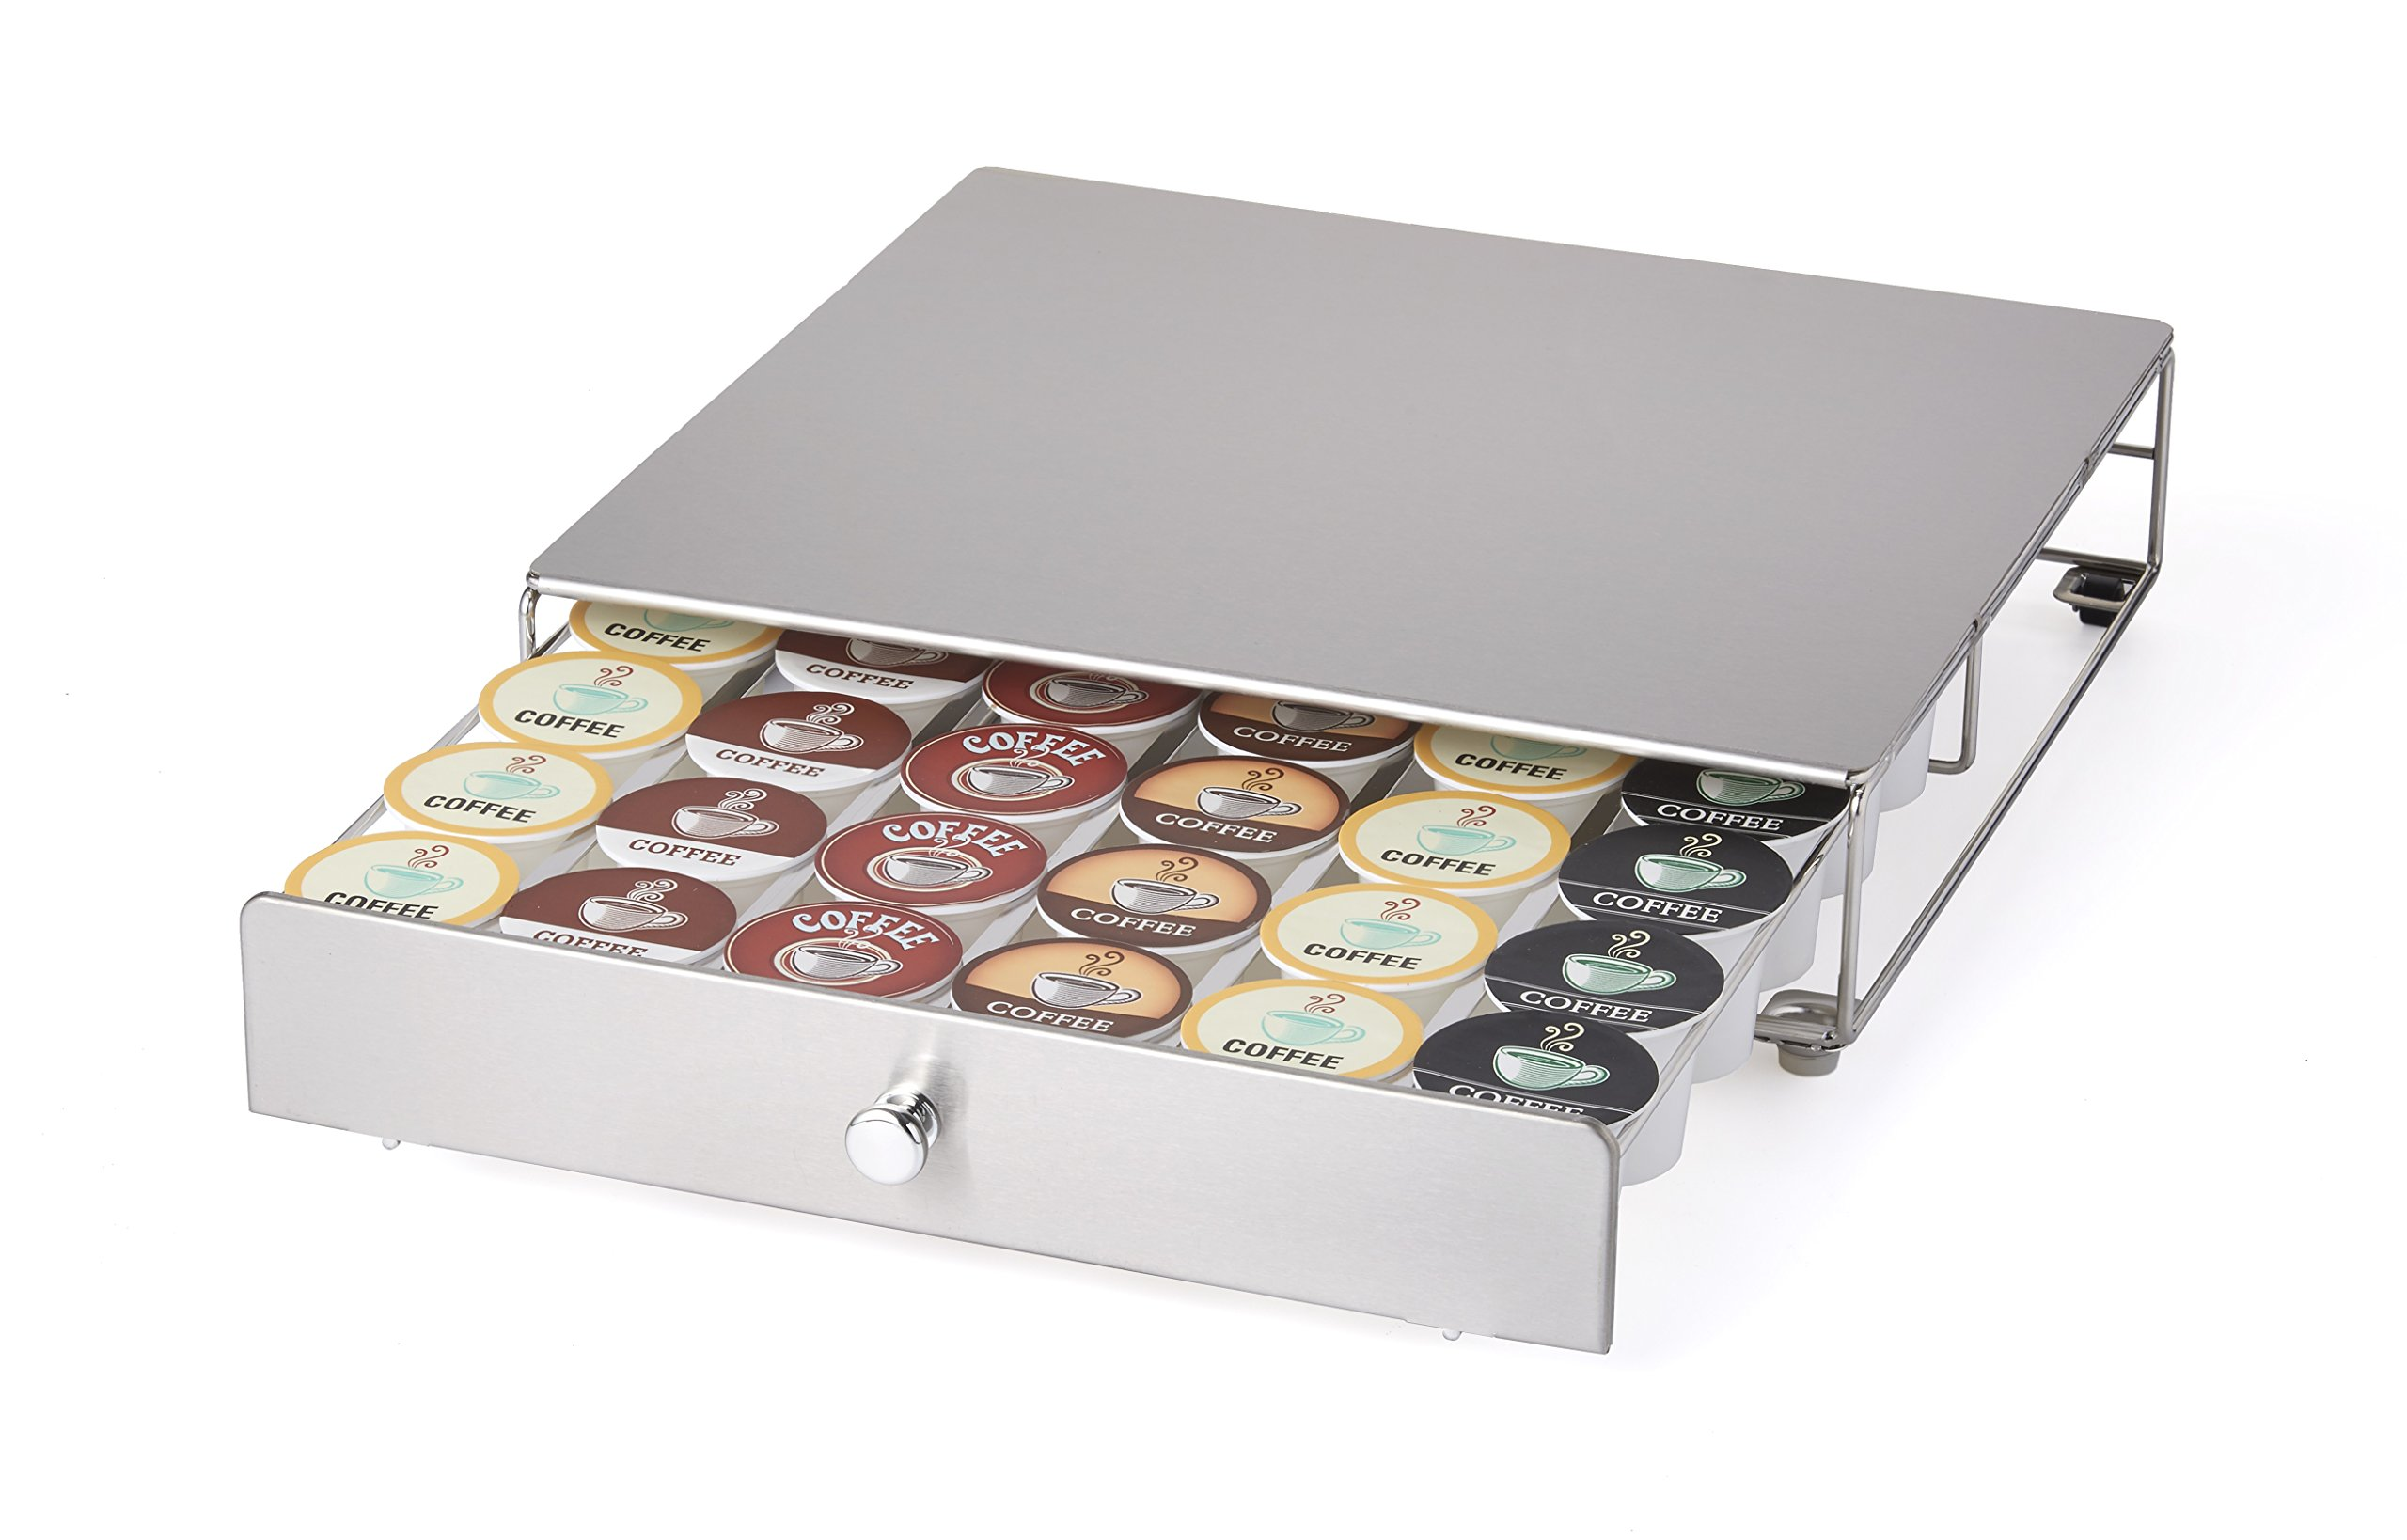 NIFTY 6498 Keurig Brewed Stainless Steel K-Cup Rolling Drawer, Metallic by NIFTY